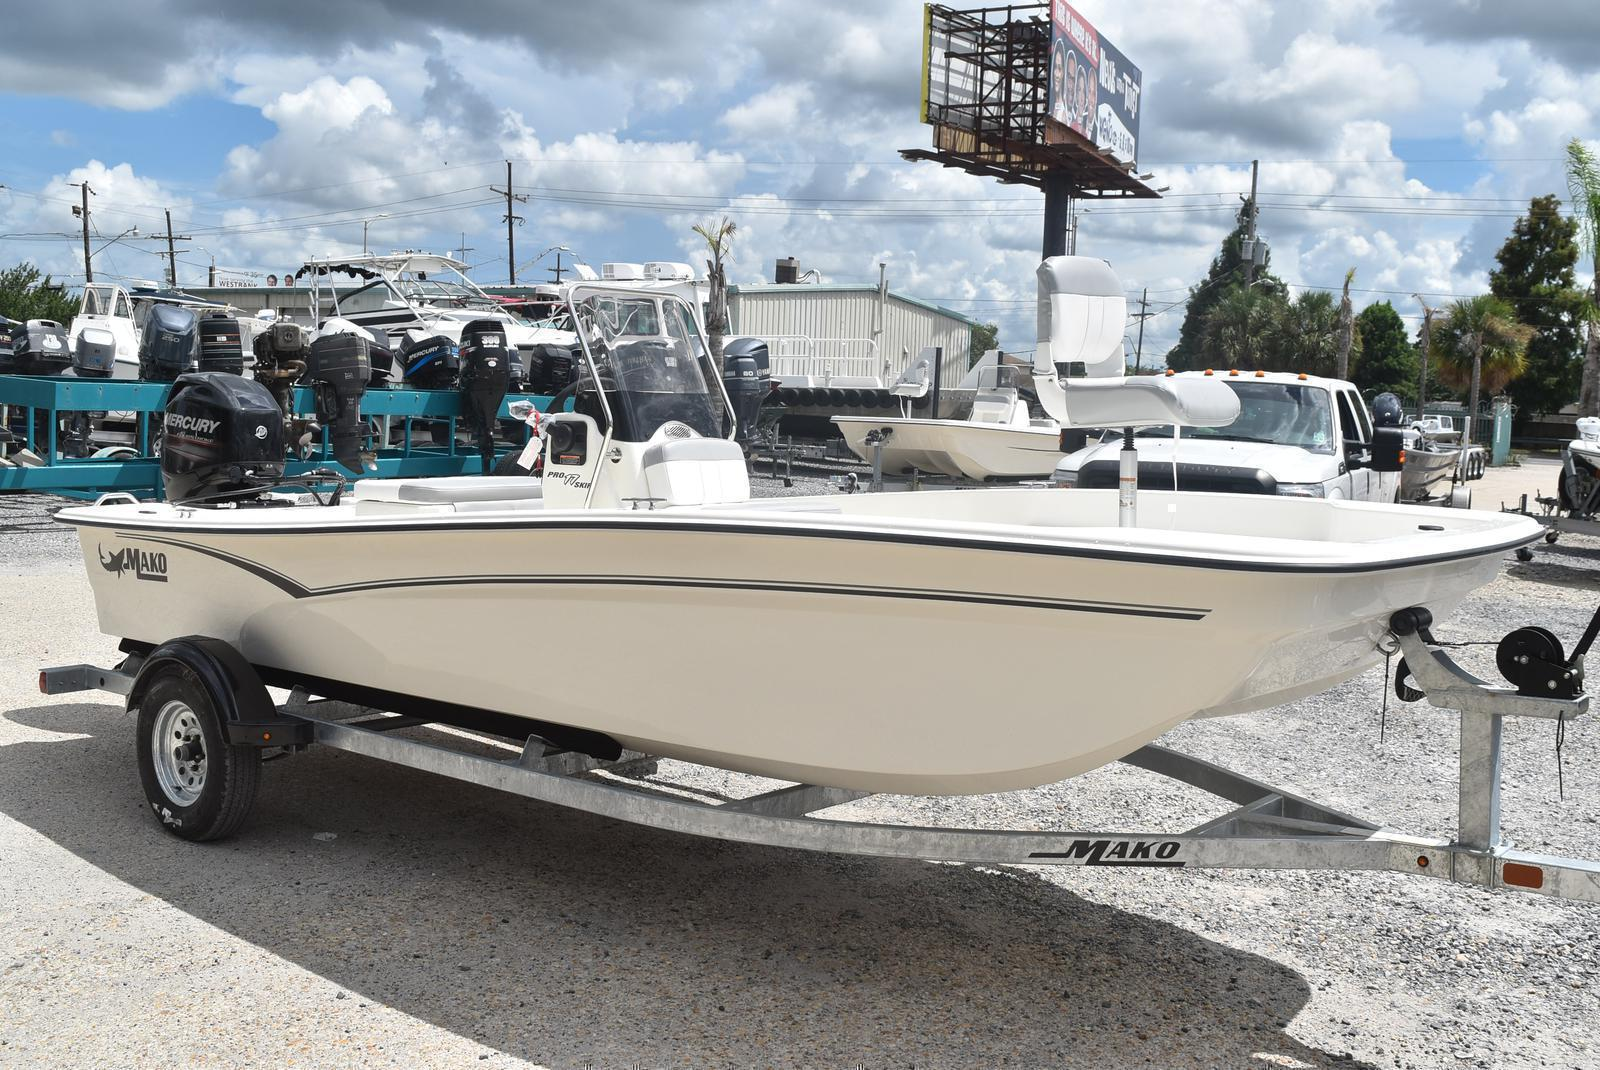 2020 Mako boat for sale, model of the boat is Pro Skiff 17, 75 ELPT & Image # 669 of 702